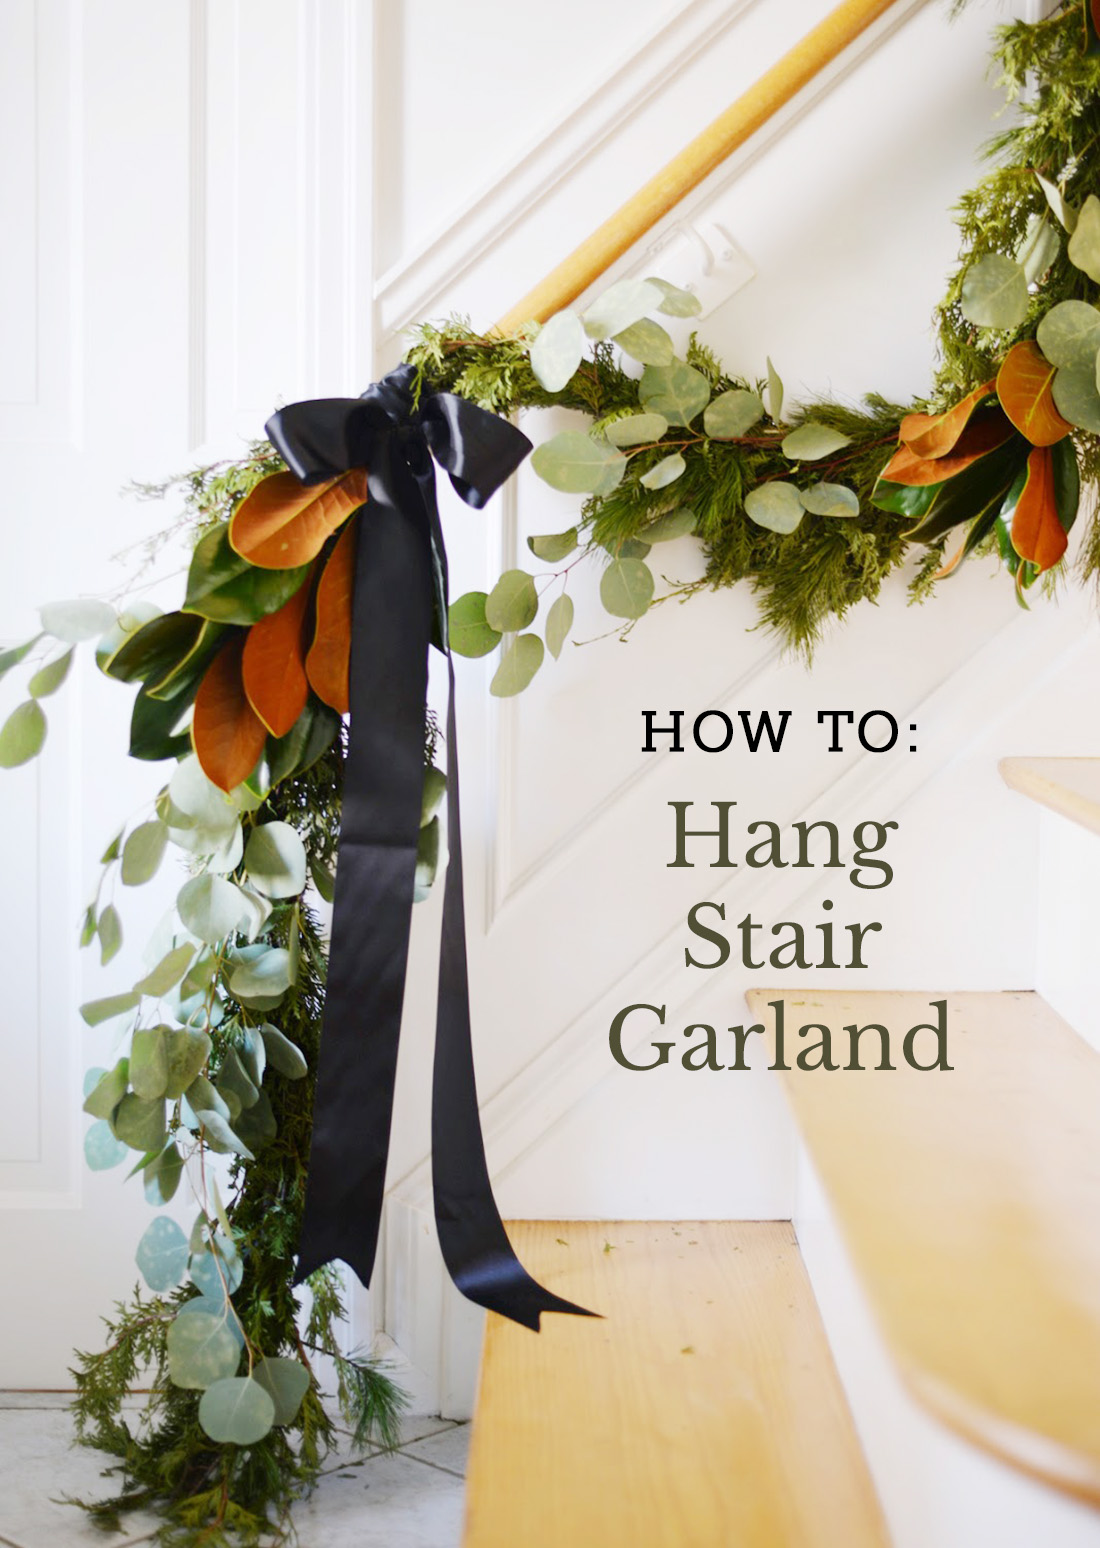 how to hang stair garland, stairway garland, staircase garland christmas